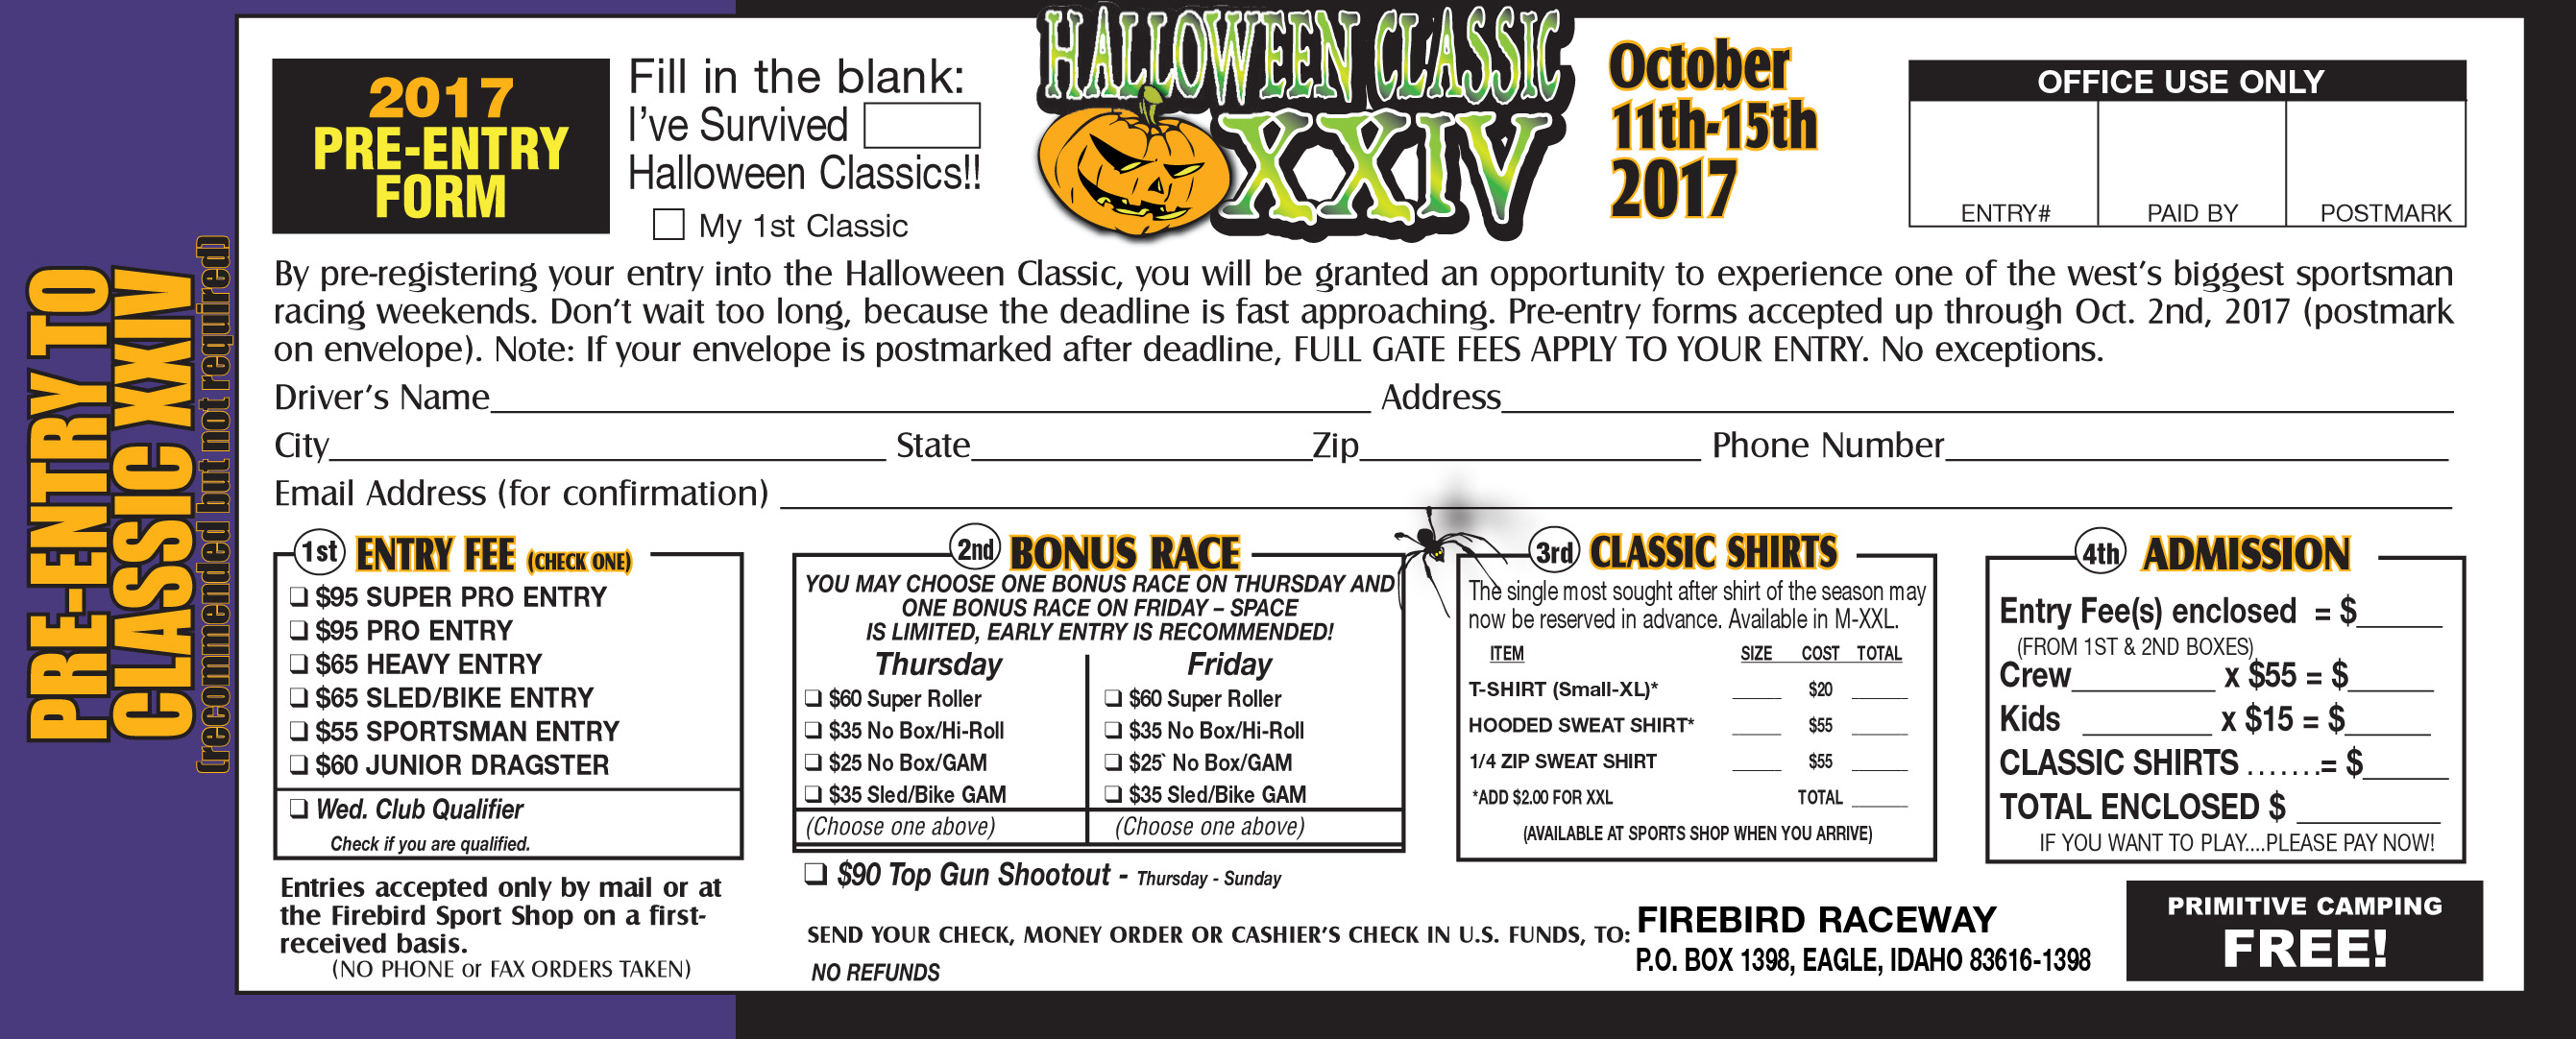 Halloween Classic / October 11-15, 2017 / Firebird Raceway